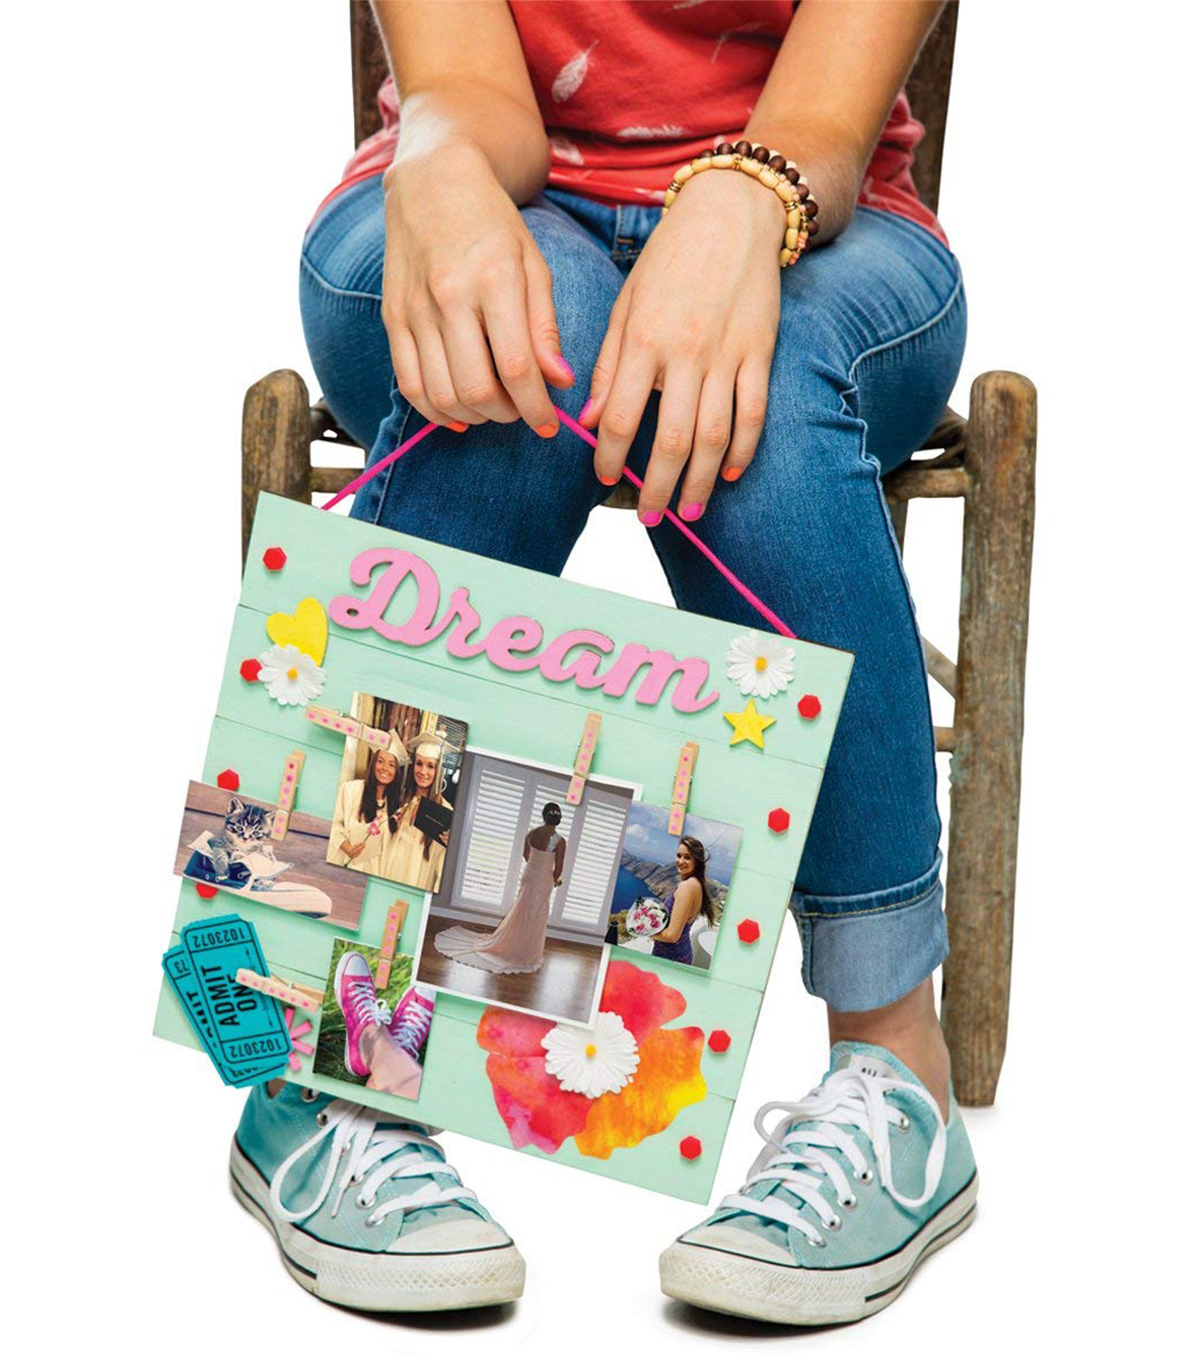 Creativity for Kids Dare To Dream Board Craft Kit